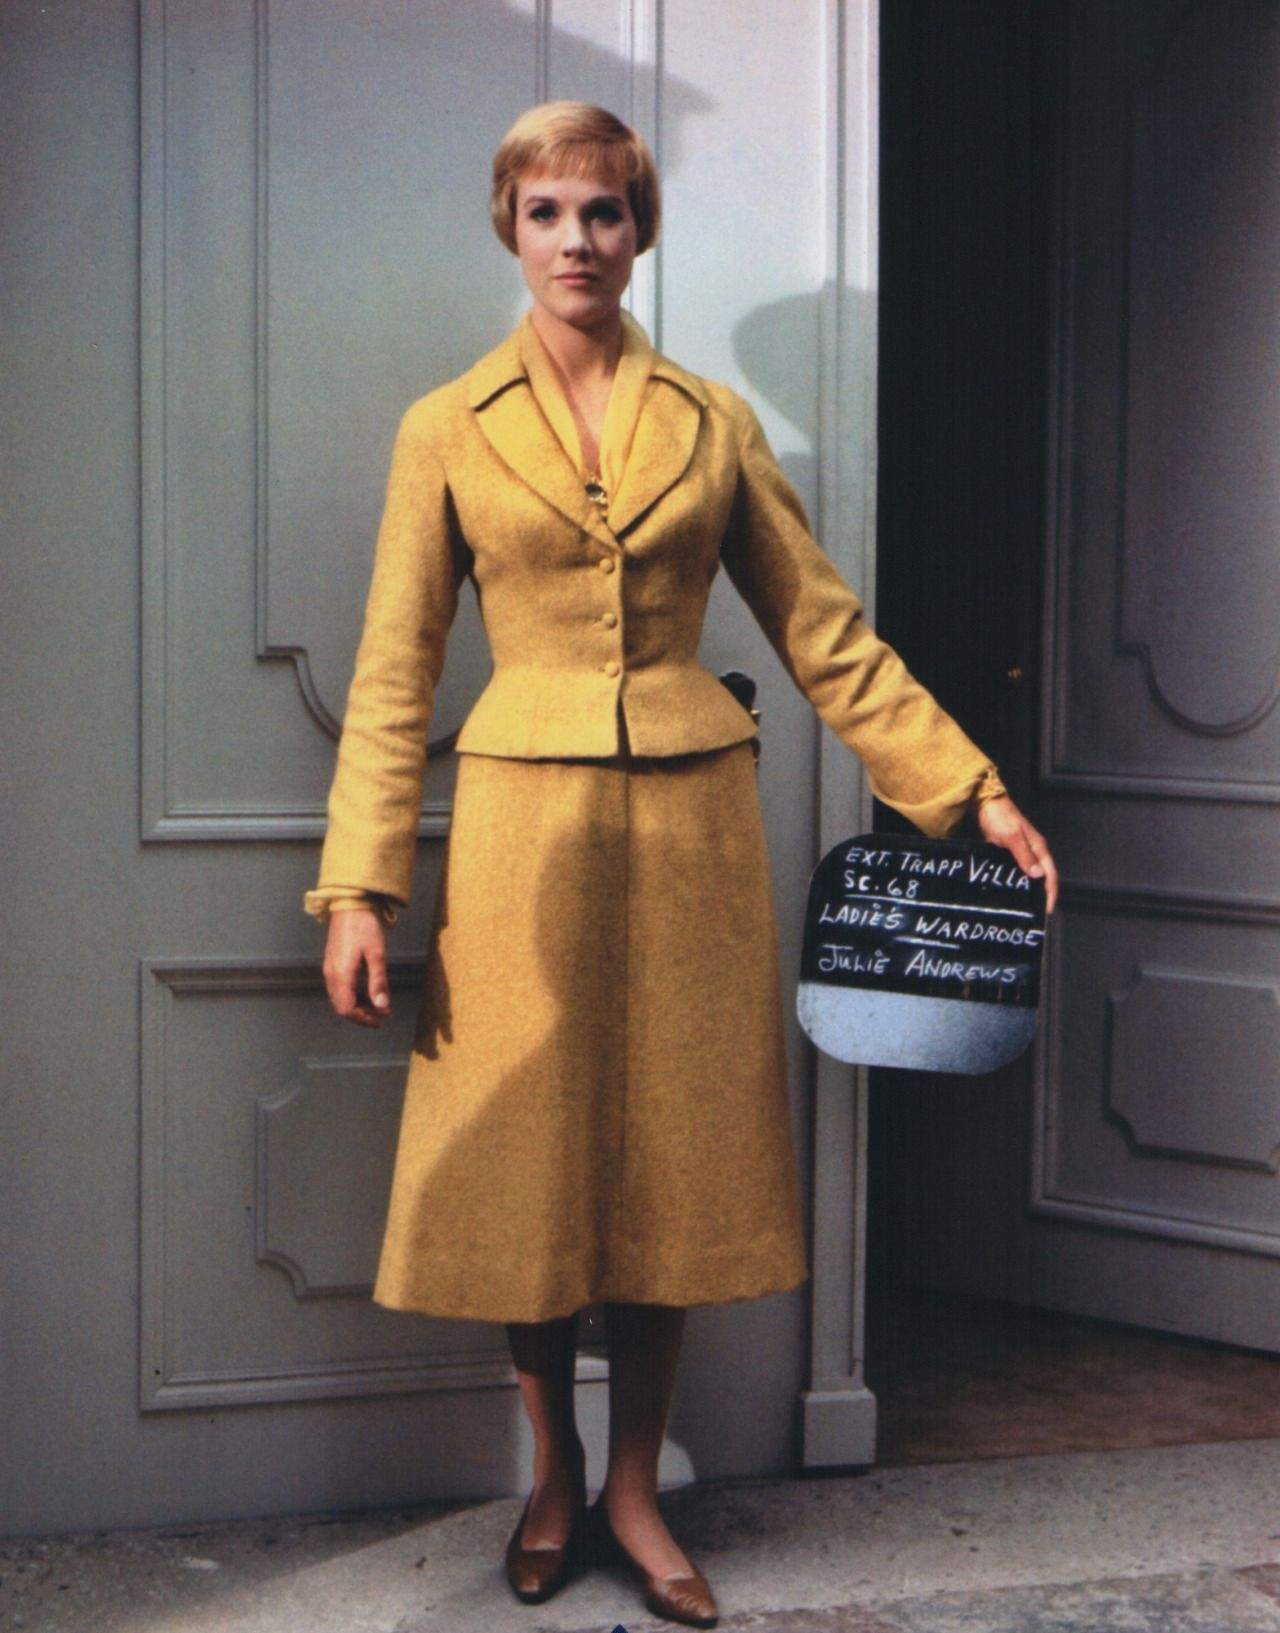 Julie Andrews In The Sound Of Music 1965 Sound Of Music Costumes Sound Of Music Movie Julie Andrews